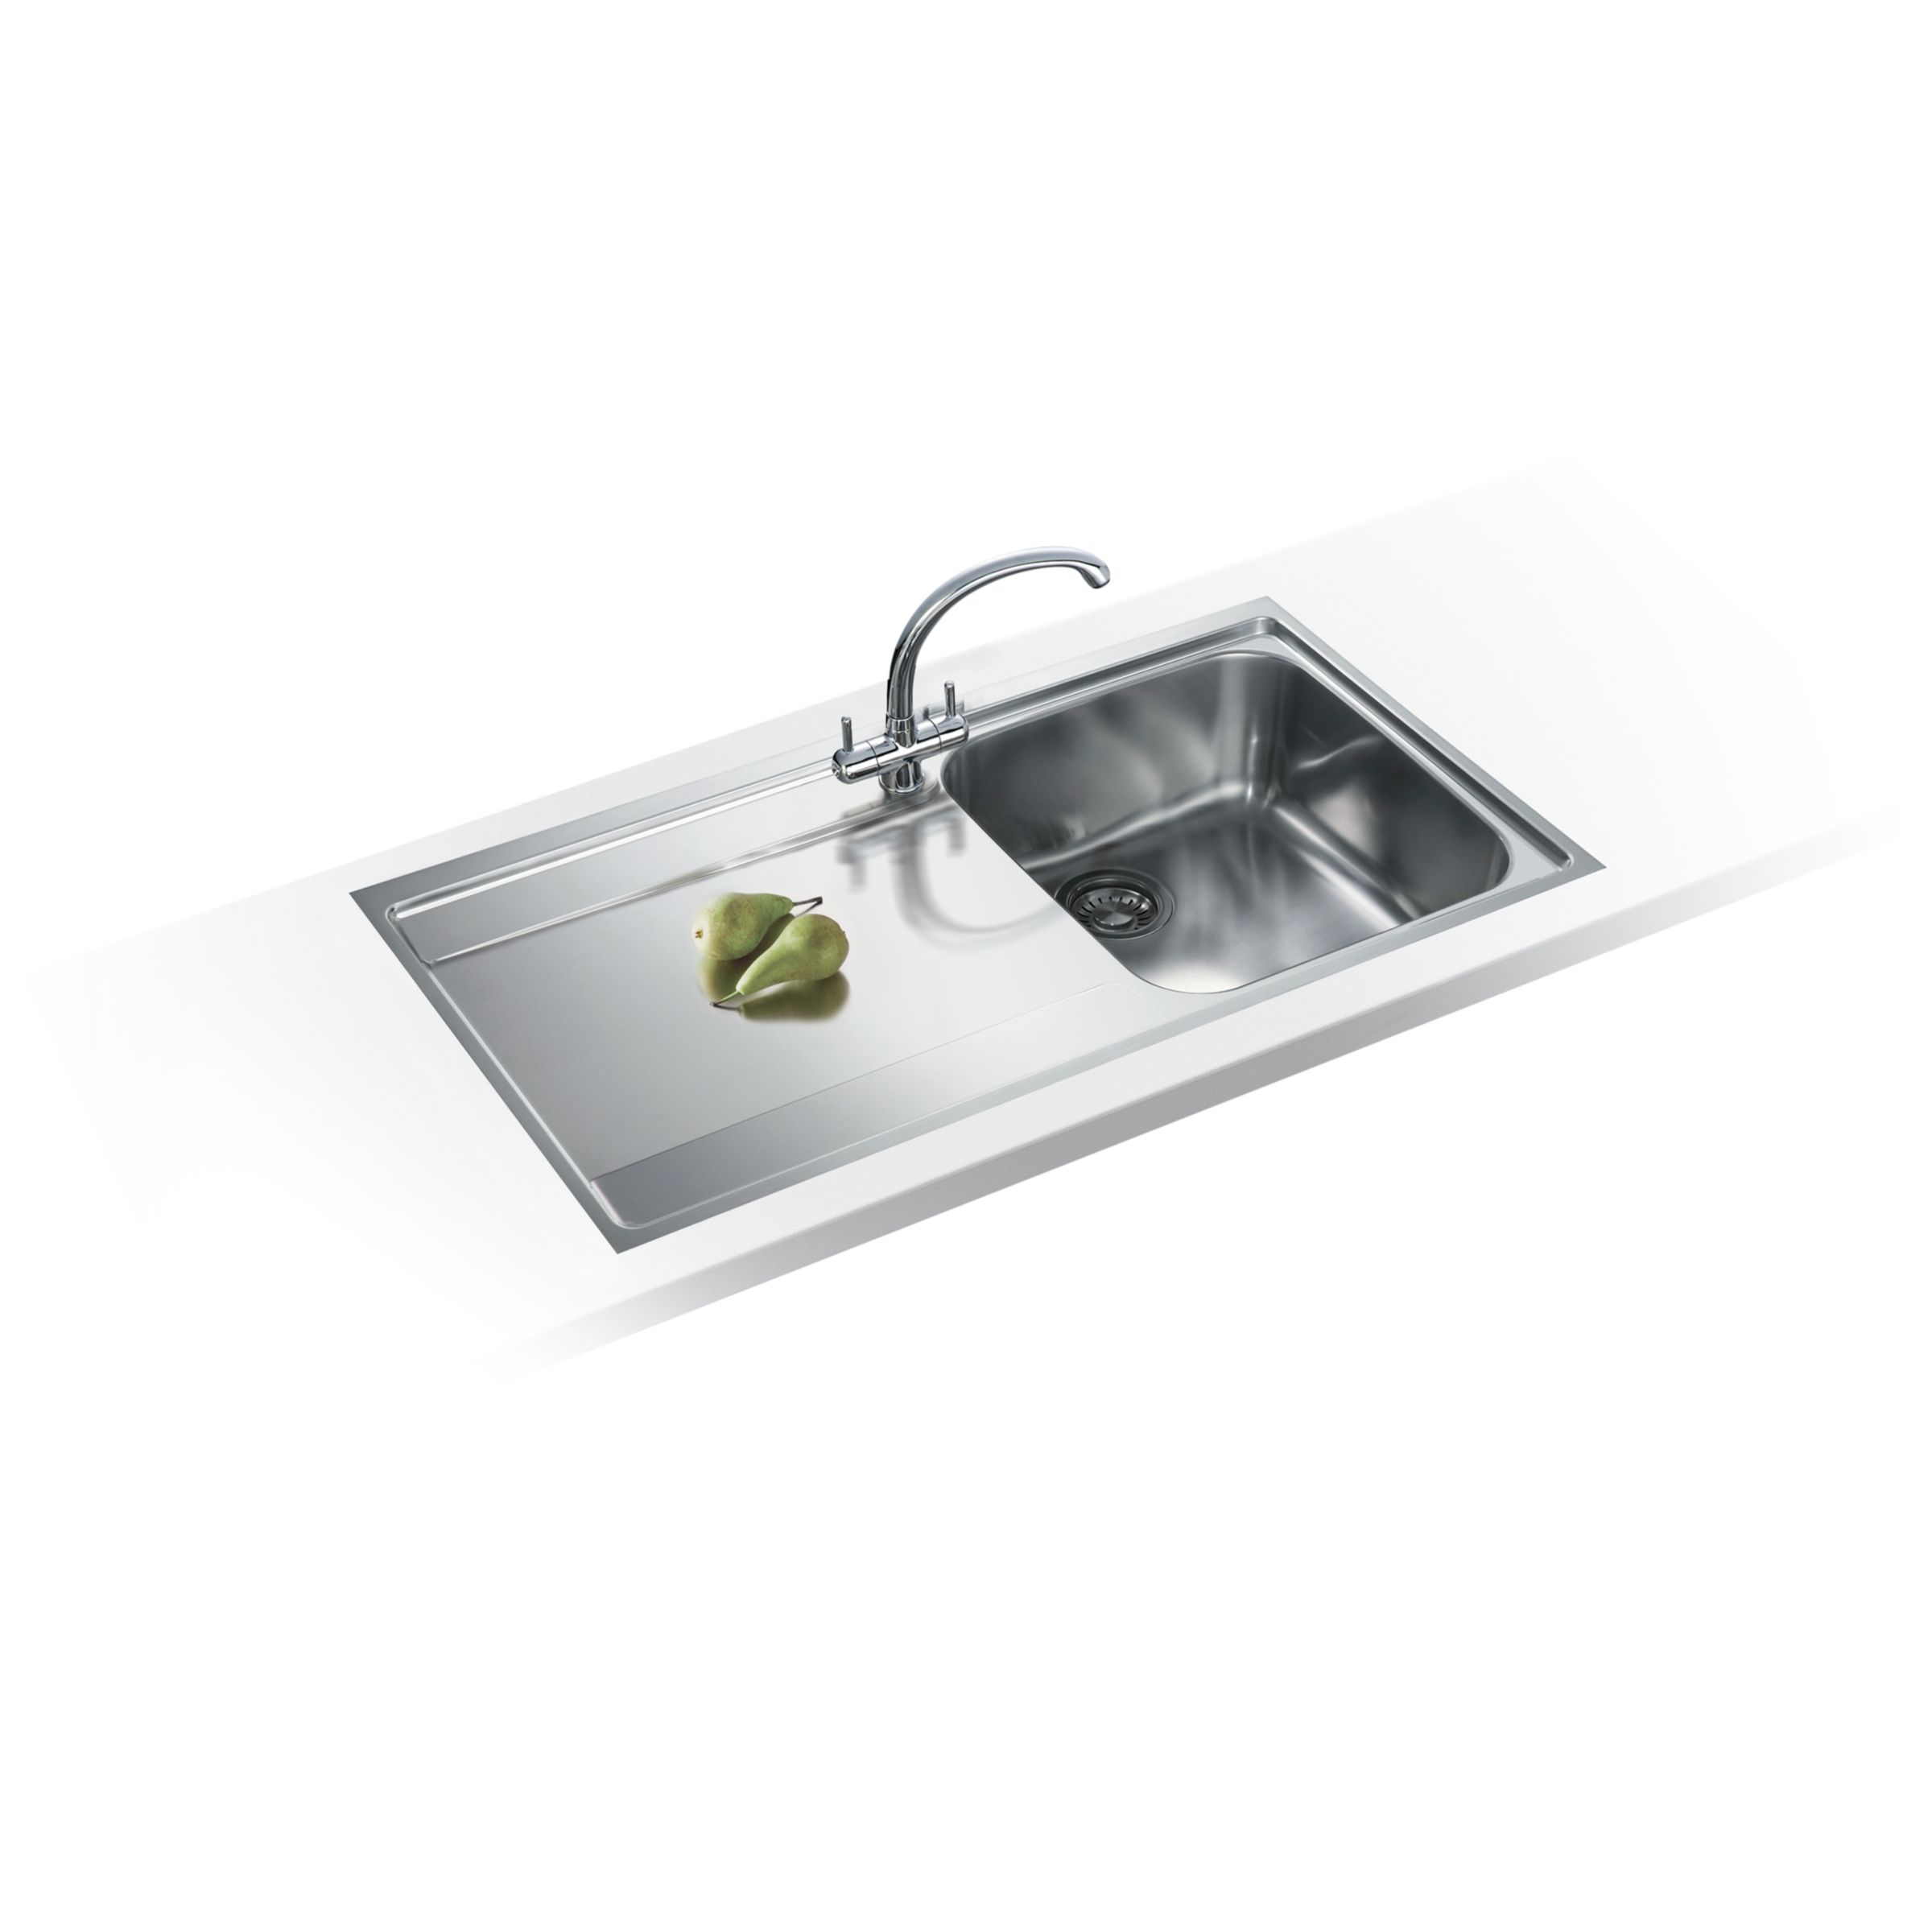 Franke Franke Maris MRX 211 Left Hand Single Bowl Sink, Stainless Steel